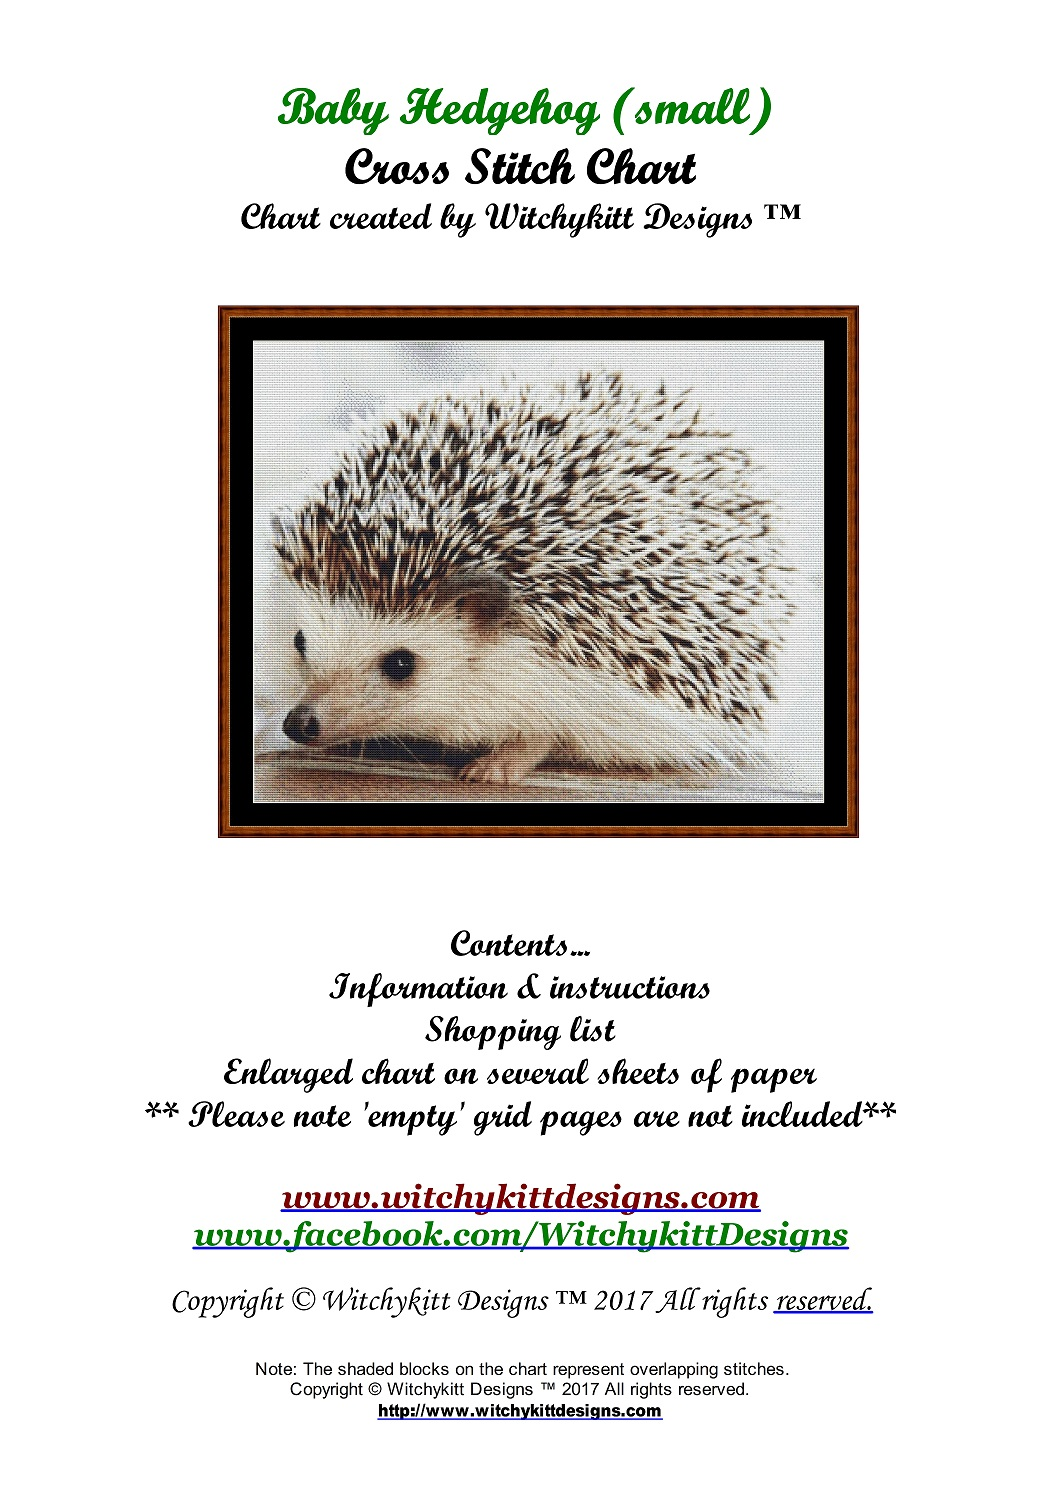 Baby Hedgehog (SMALL) Cross Stitch - Click Image to Close